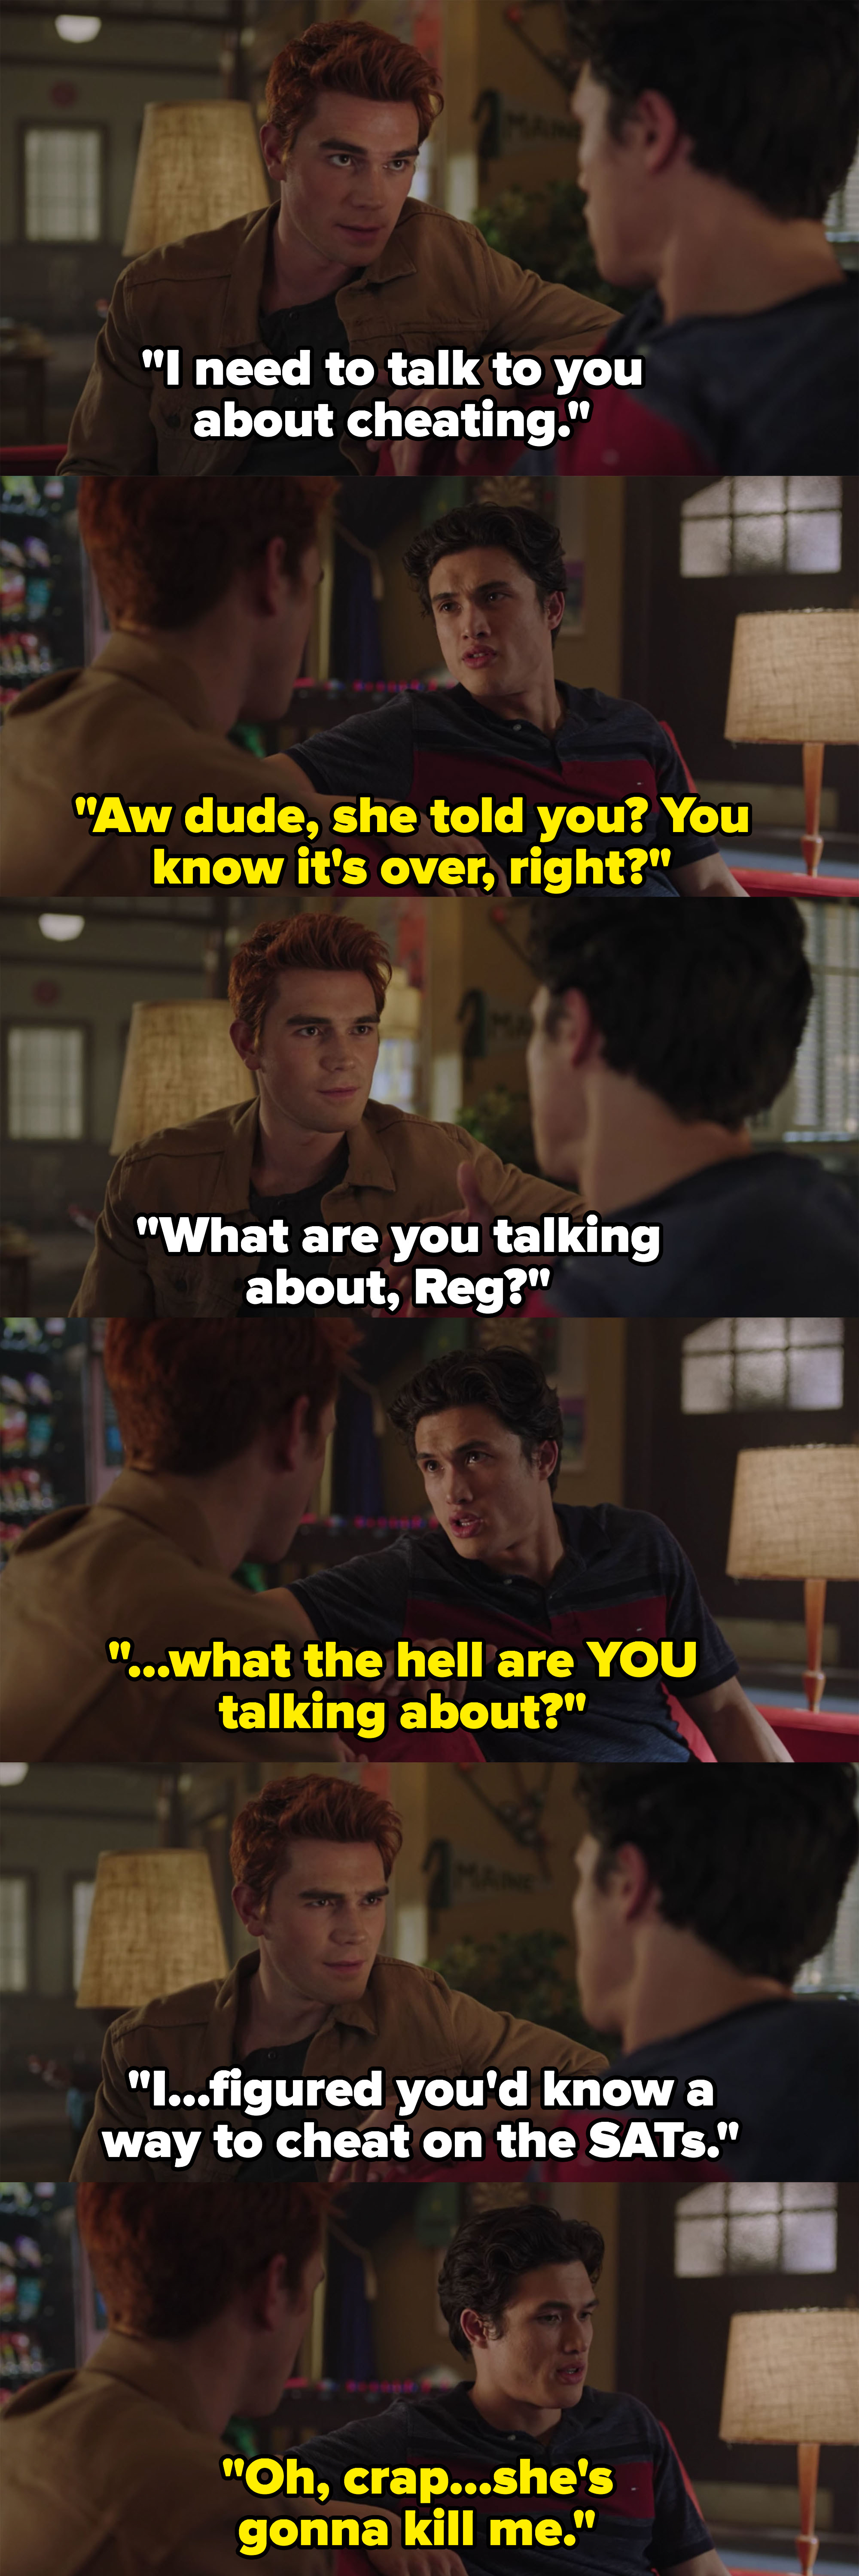 """Archie comes to Reggie for help cheating on the SATs, Reggie thinks he's asking about """"cheating"""" with Veronica"""